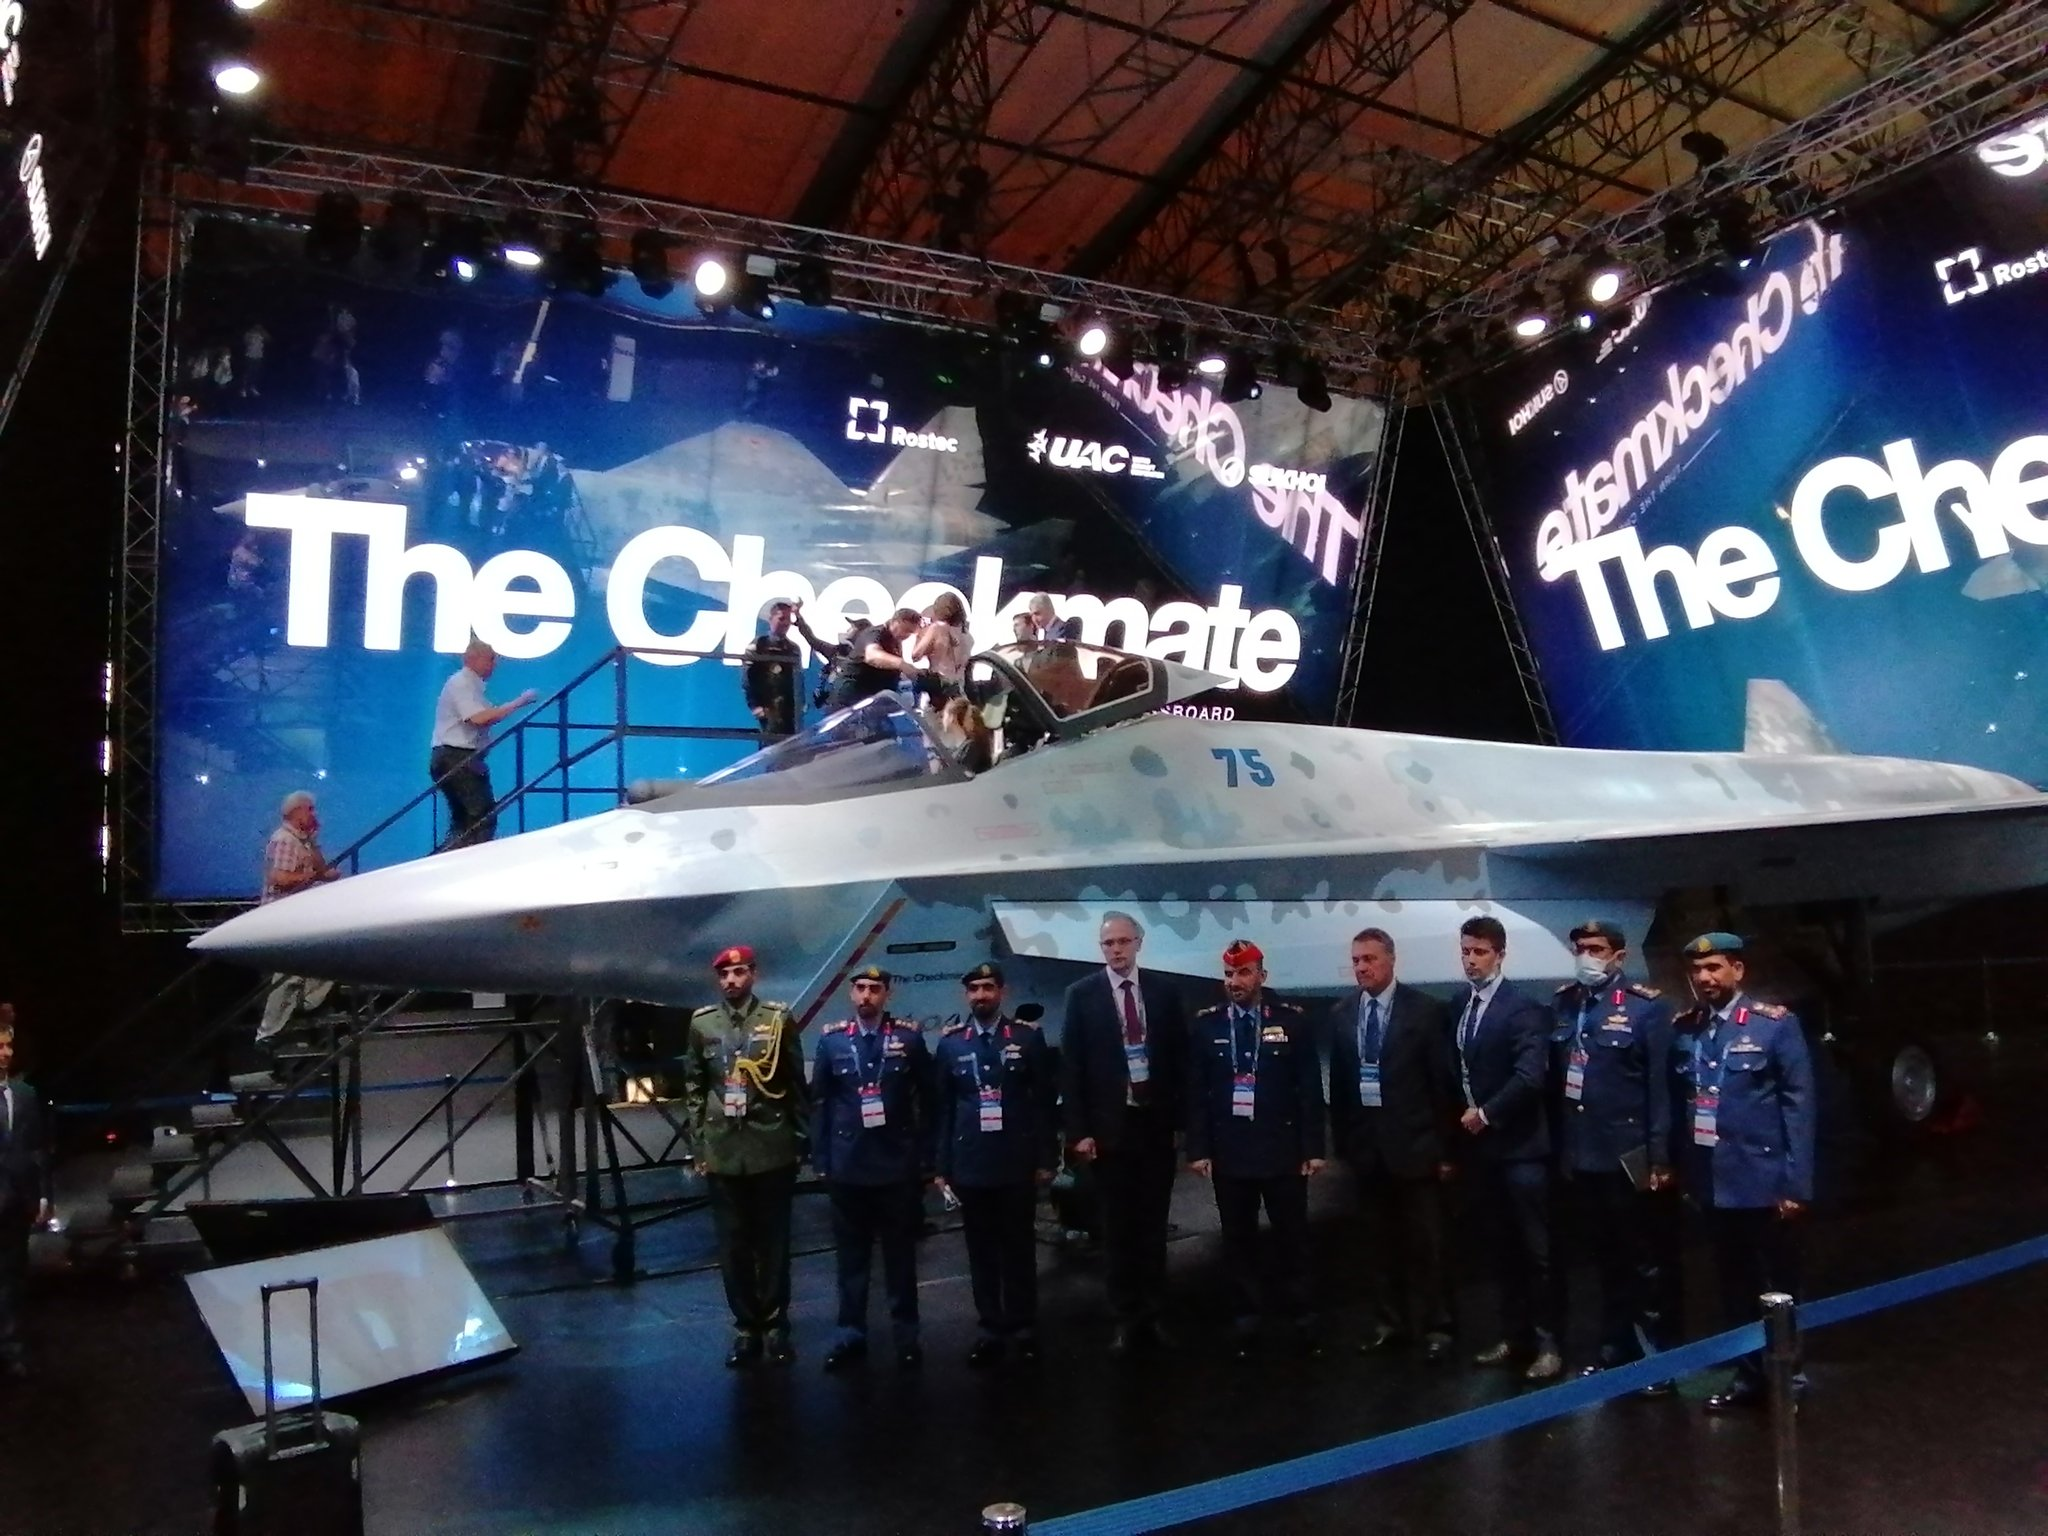 New combat aircraft will be presented at MAKS-2021 - Page 40 E65S_SmXIAUW-ys?format=jpg&name=large